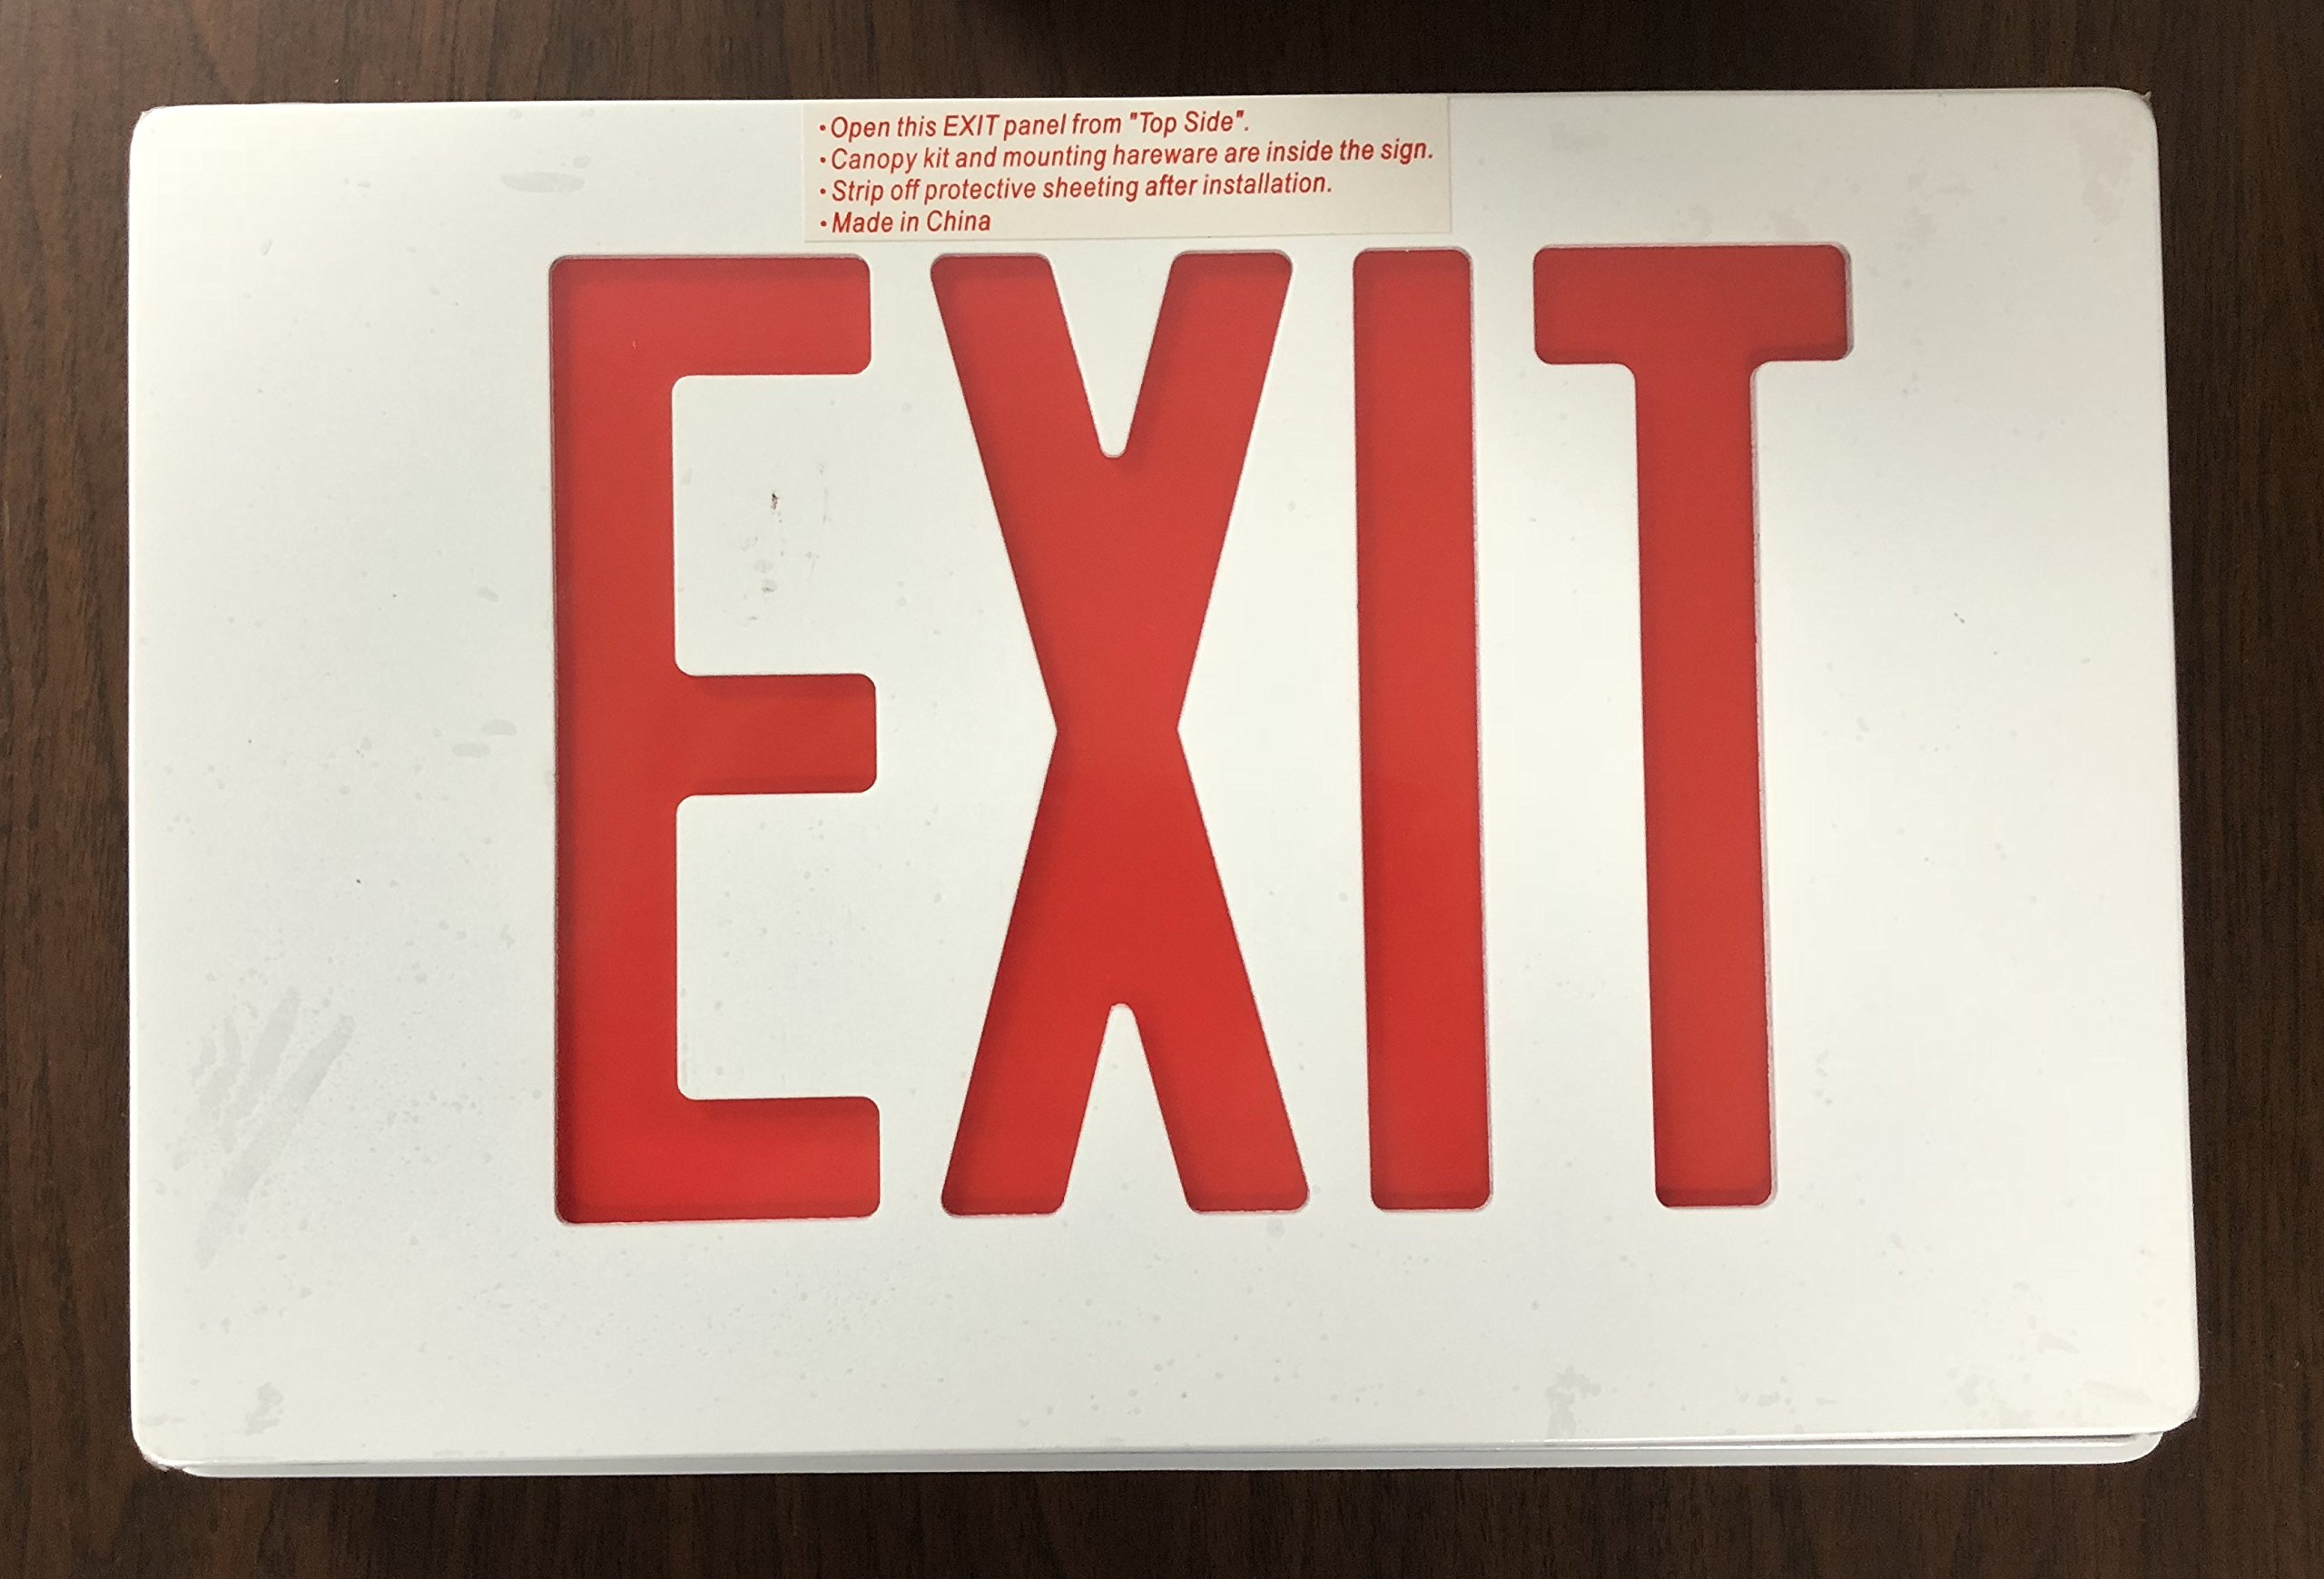 Globe Lighting White 12.75'' Wide Die Cast Aluminum Double or Single Sided Red LED Indoor Exit sign with Battery Backup Pack Built In 100102REMDW